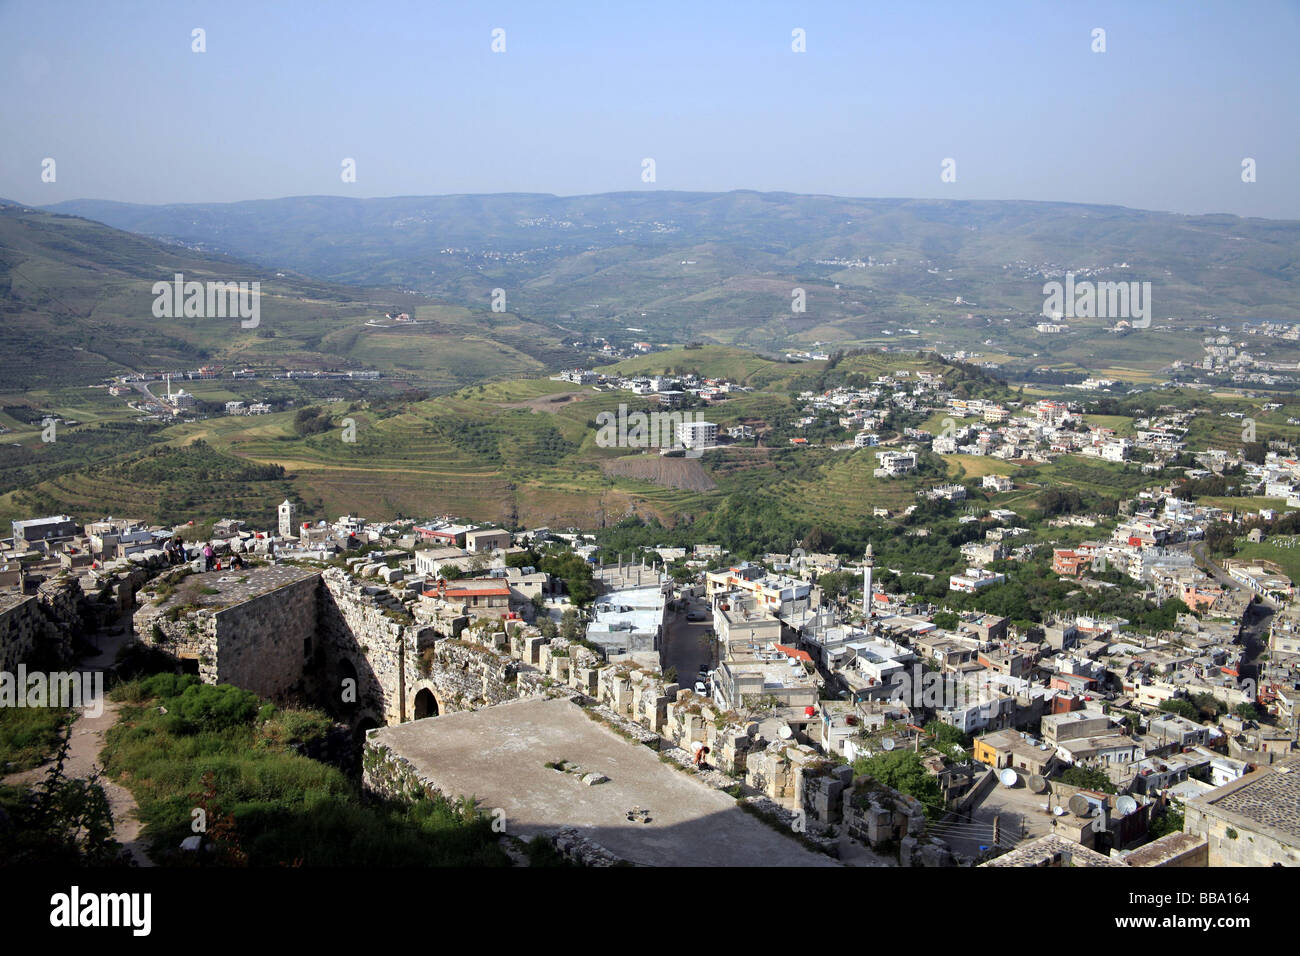 View from, Krak des Chevaliers, Syria - Stock Image